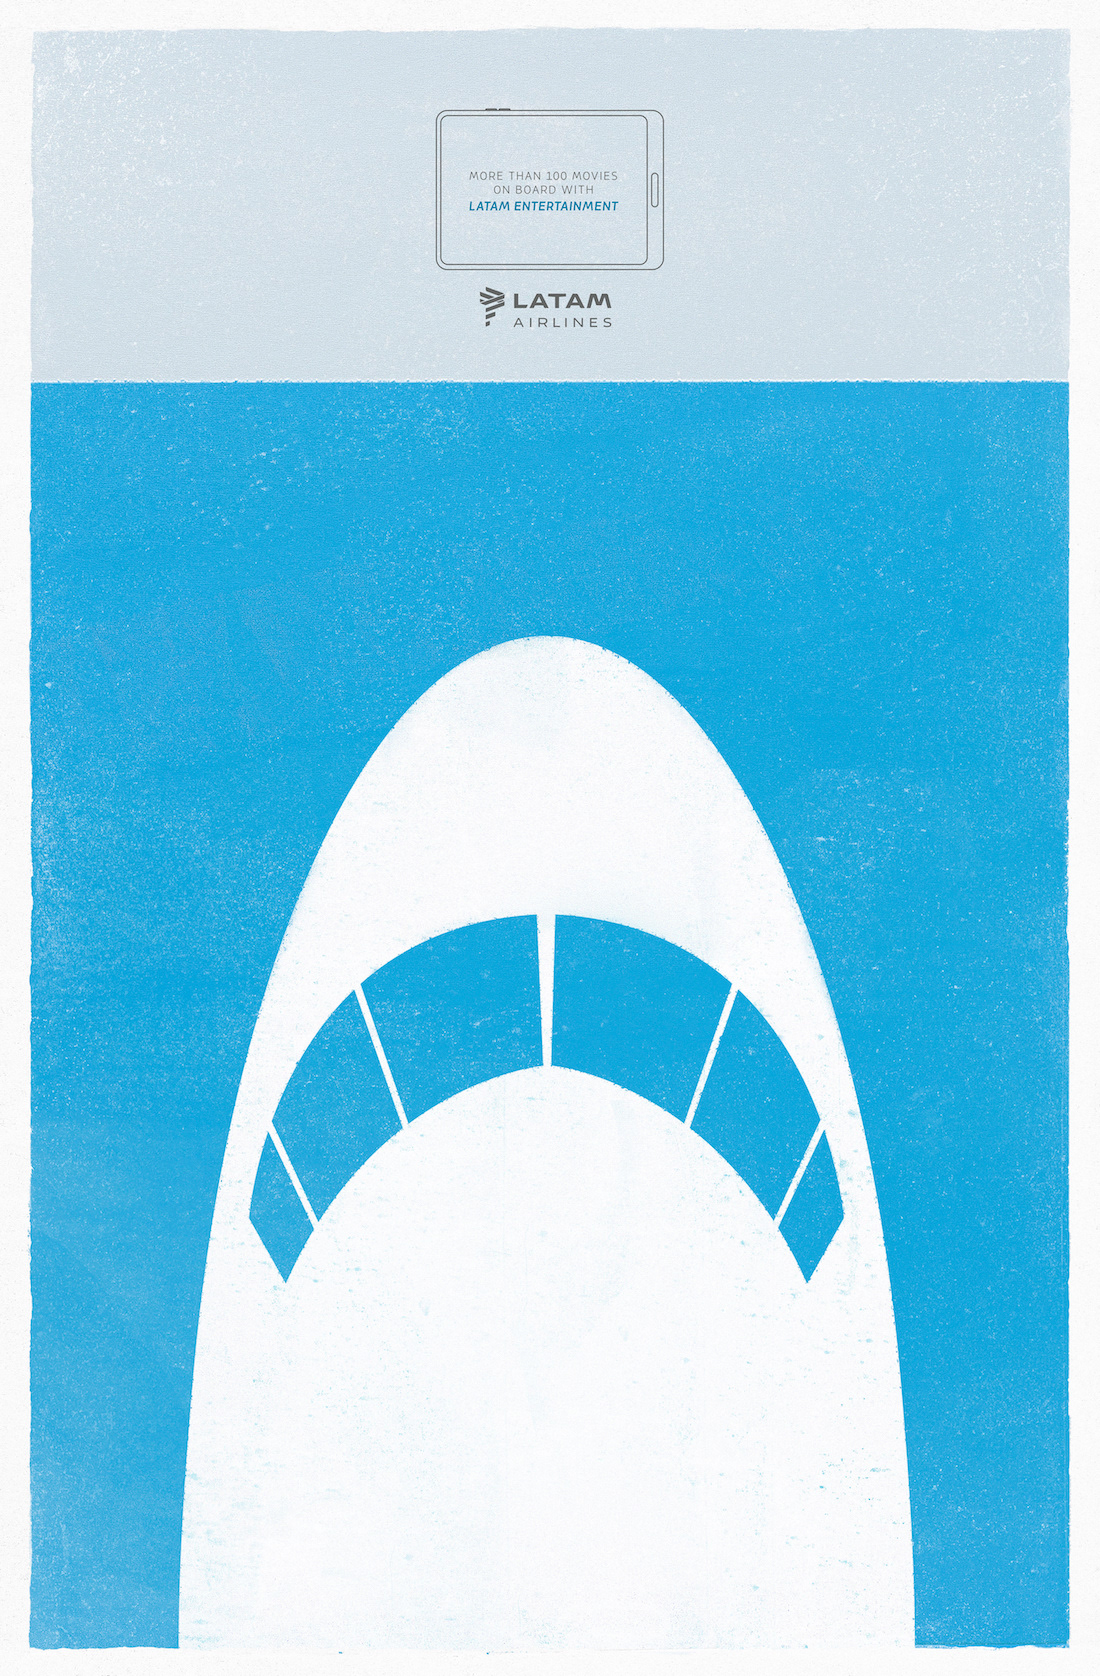 Latam Airlines: Movies - Jaws